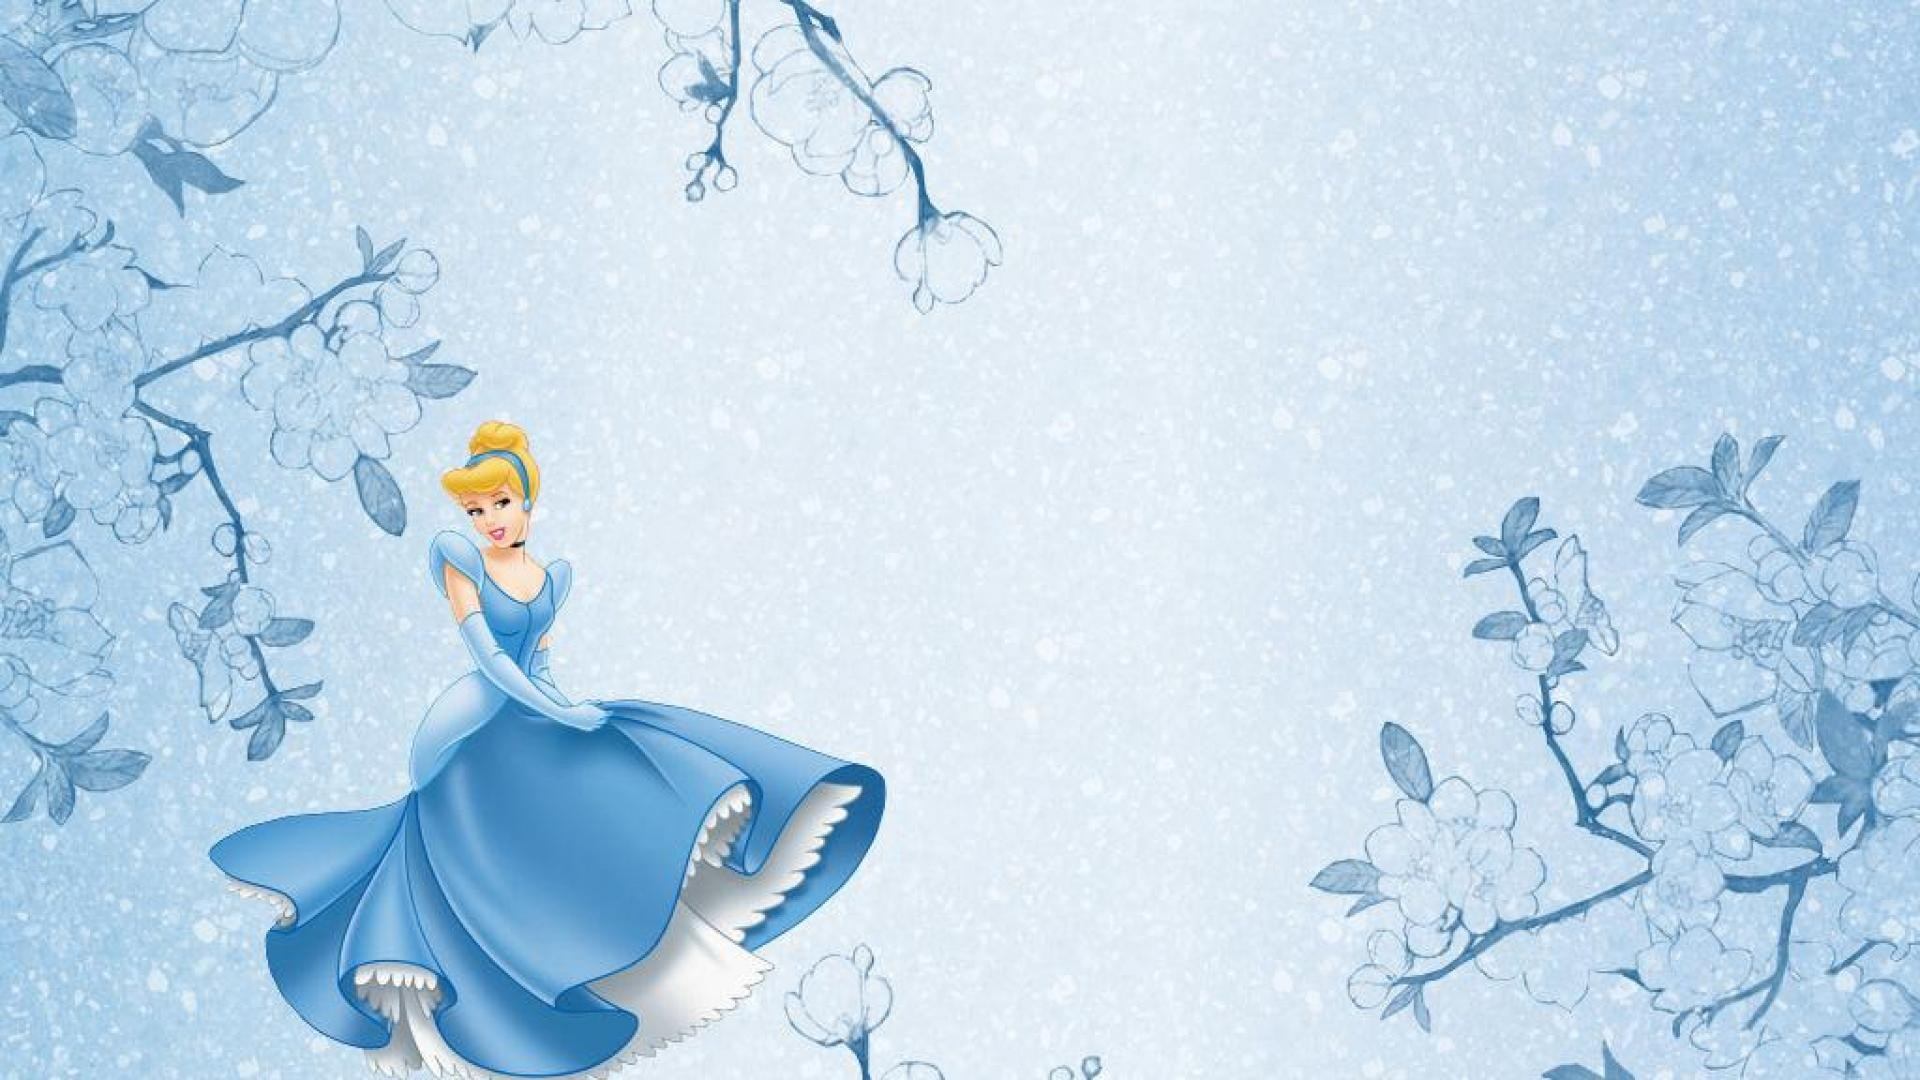 Cinderella wallpaper download free high resolution backgrounds cinderella wallpapers thecheapjerseys Choice Image